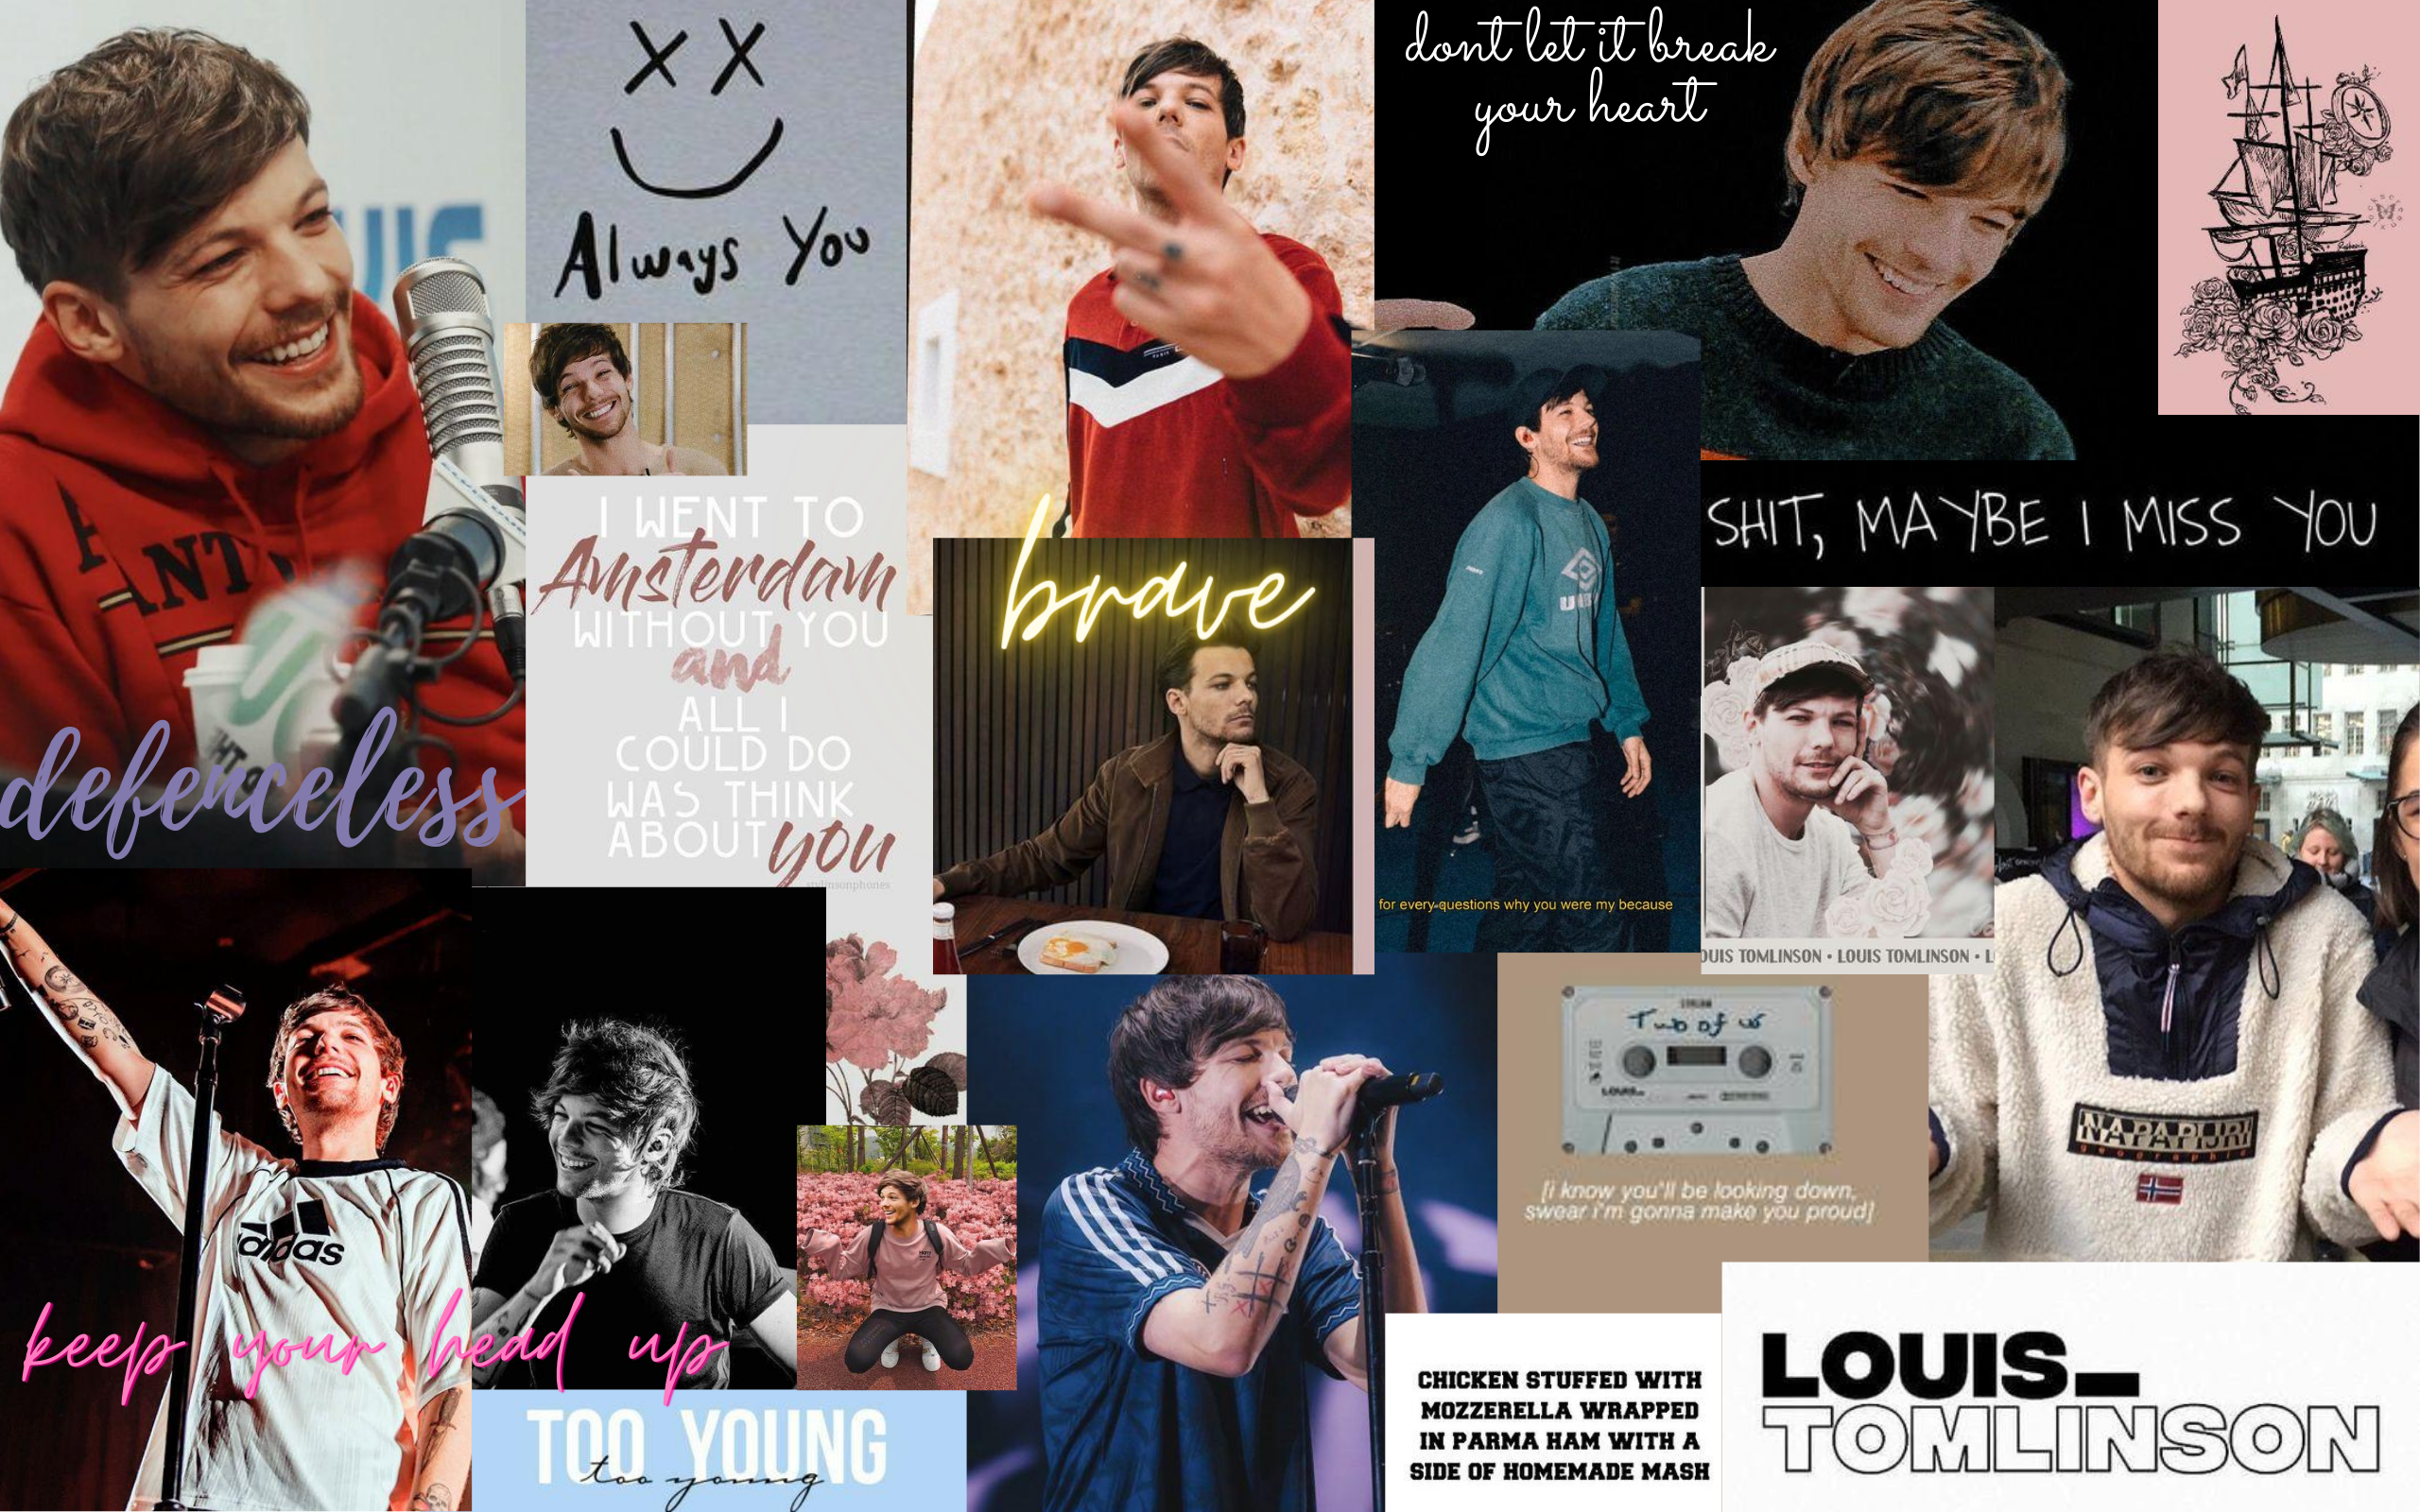 Louis Tomlinson Wallpaper In 2020 Aesthetic Desktop Wallpaper Macbook Wallpaper One Direction Wallpaper